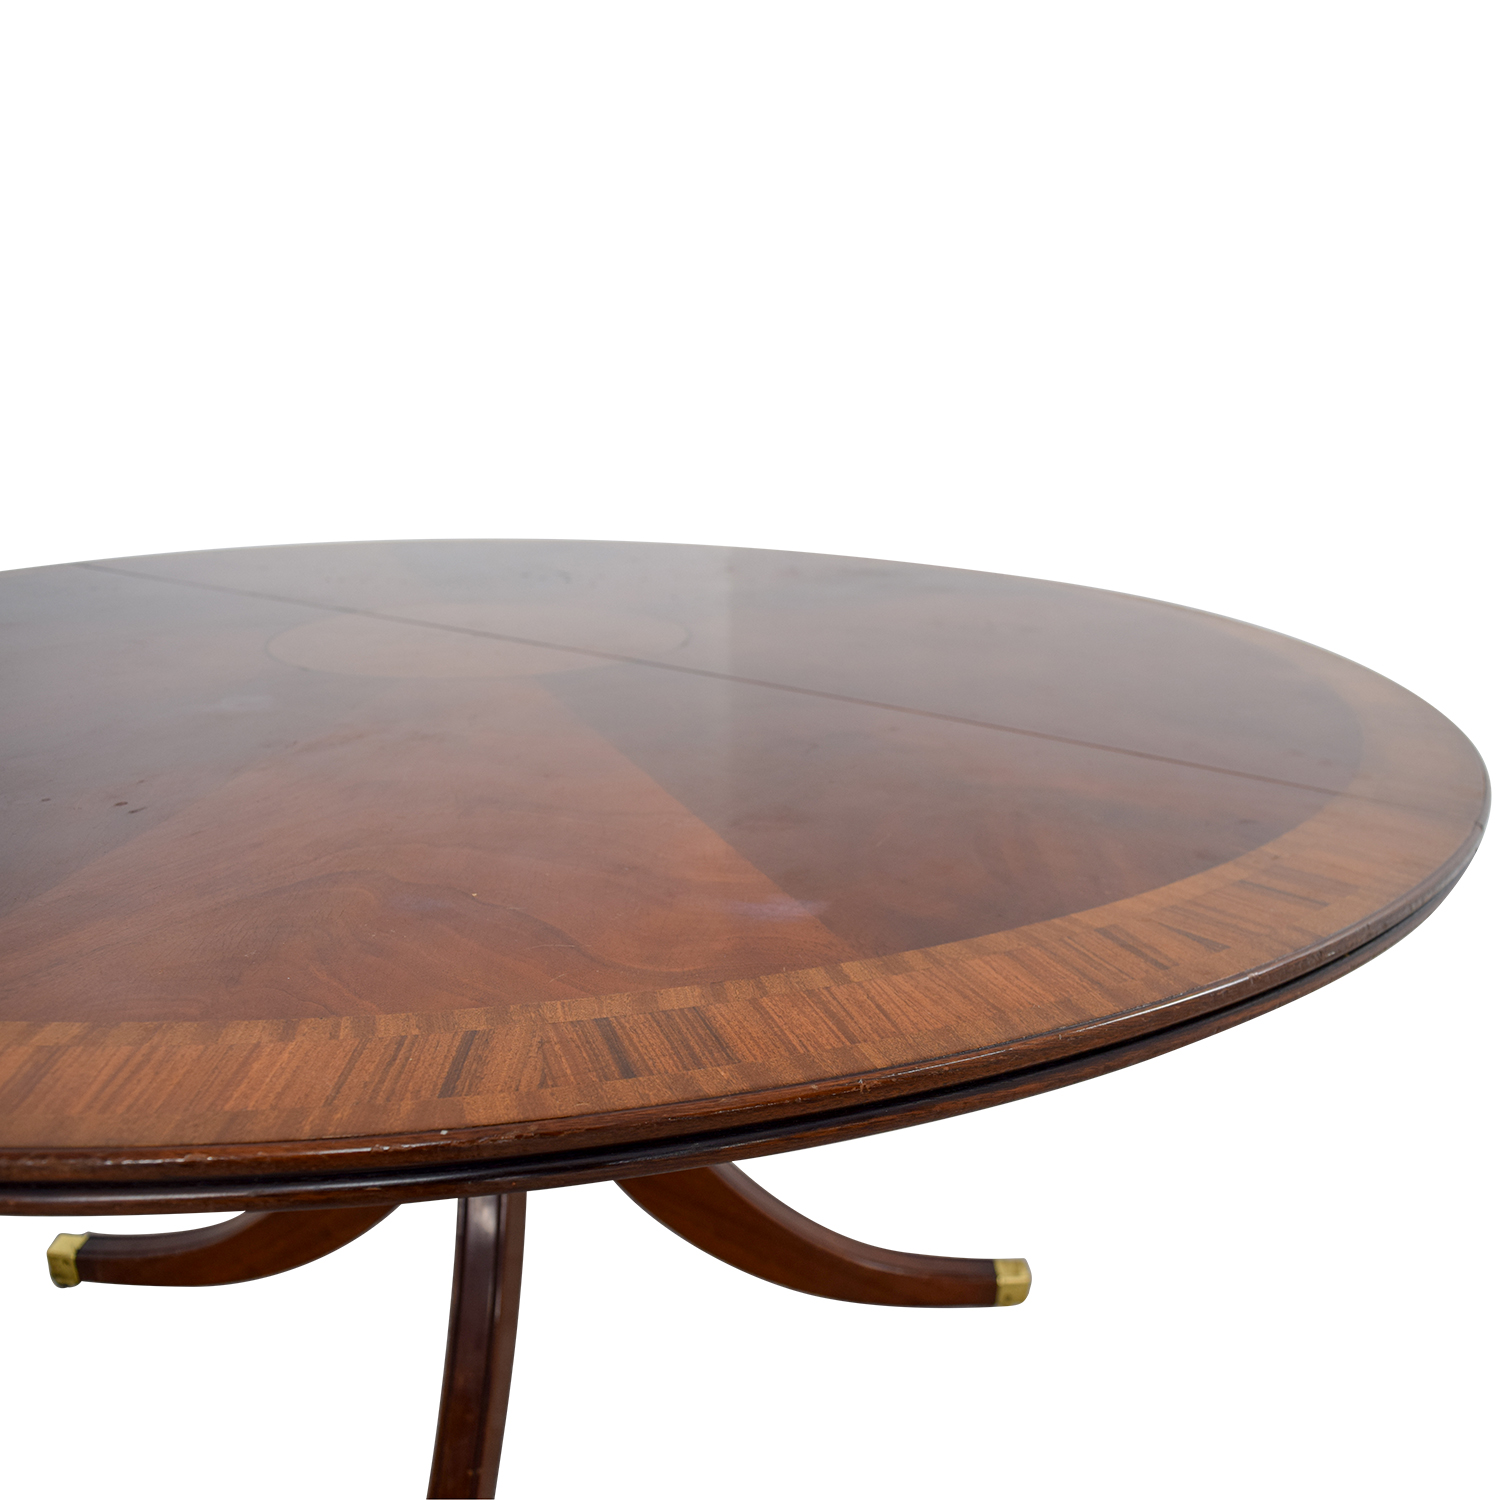 ... Scully U0026 Scully Scully U0026 Scully Mahogany Round Dining Table With  Extension ...